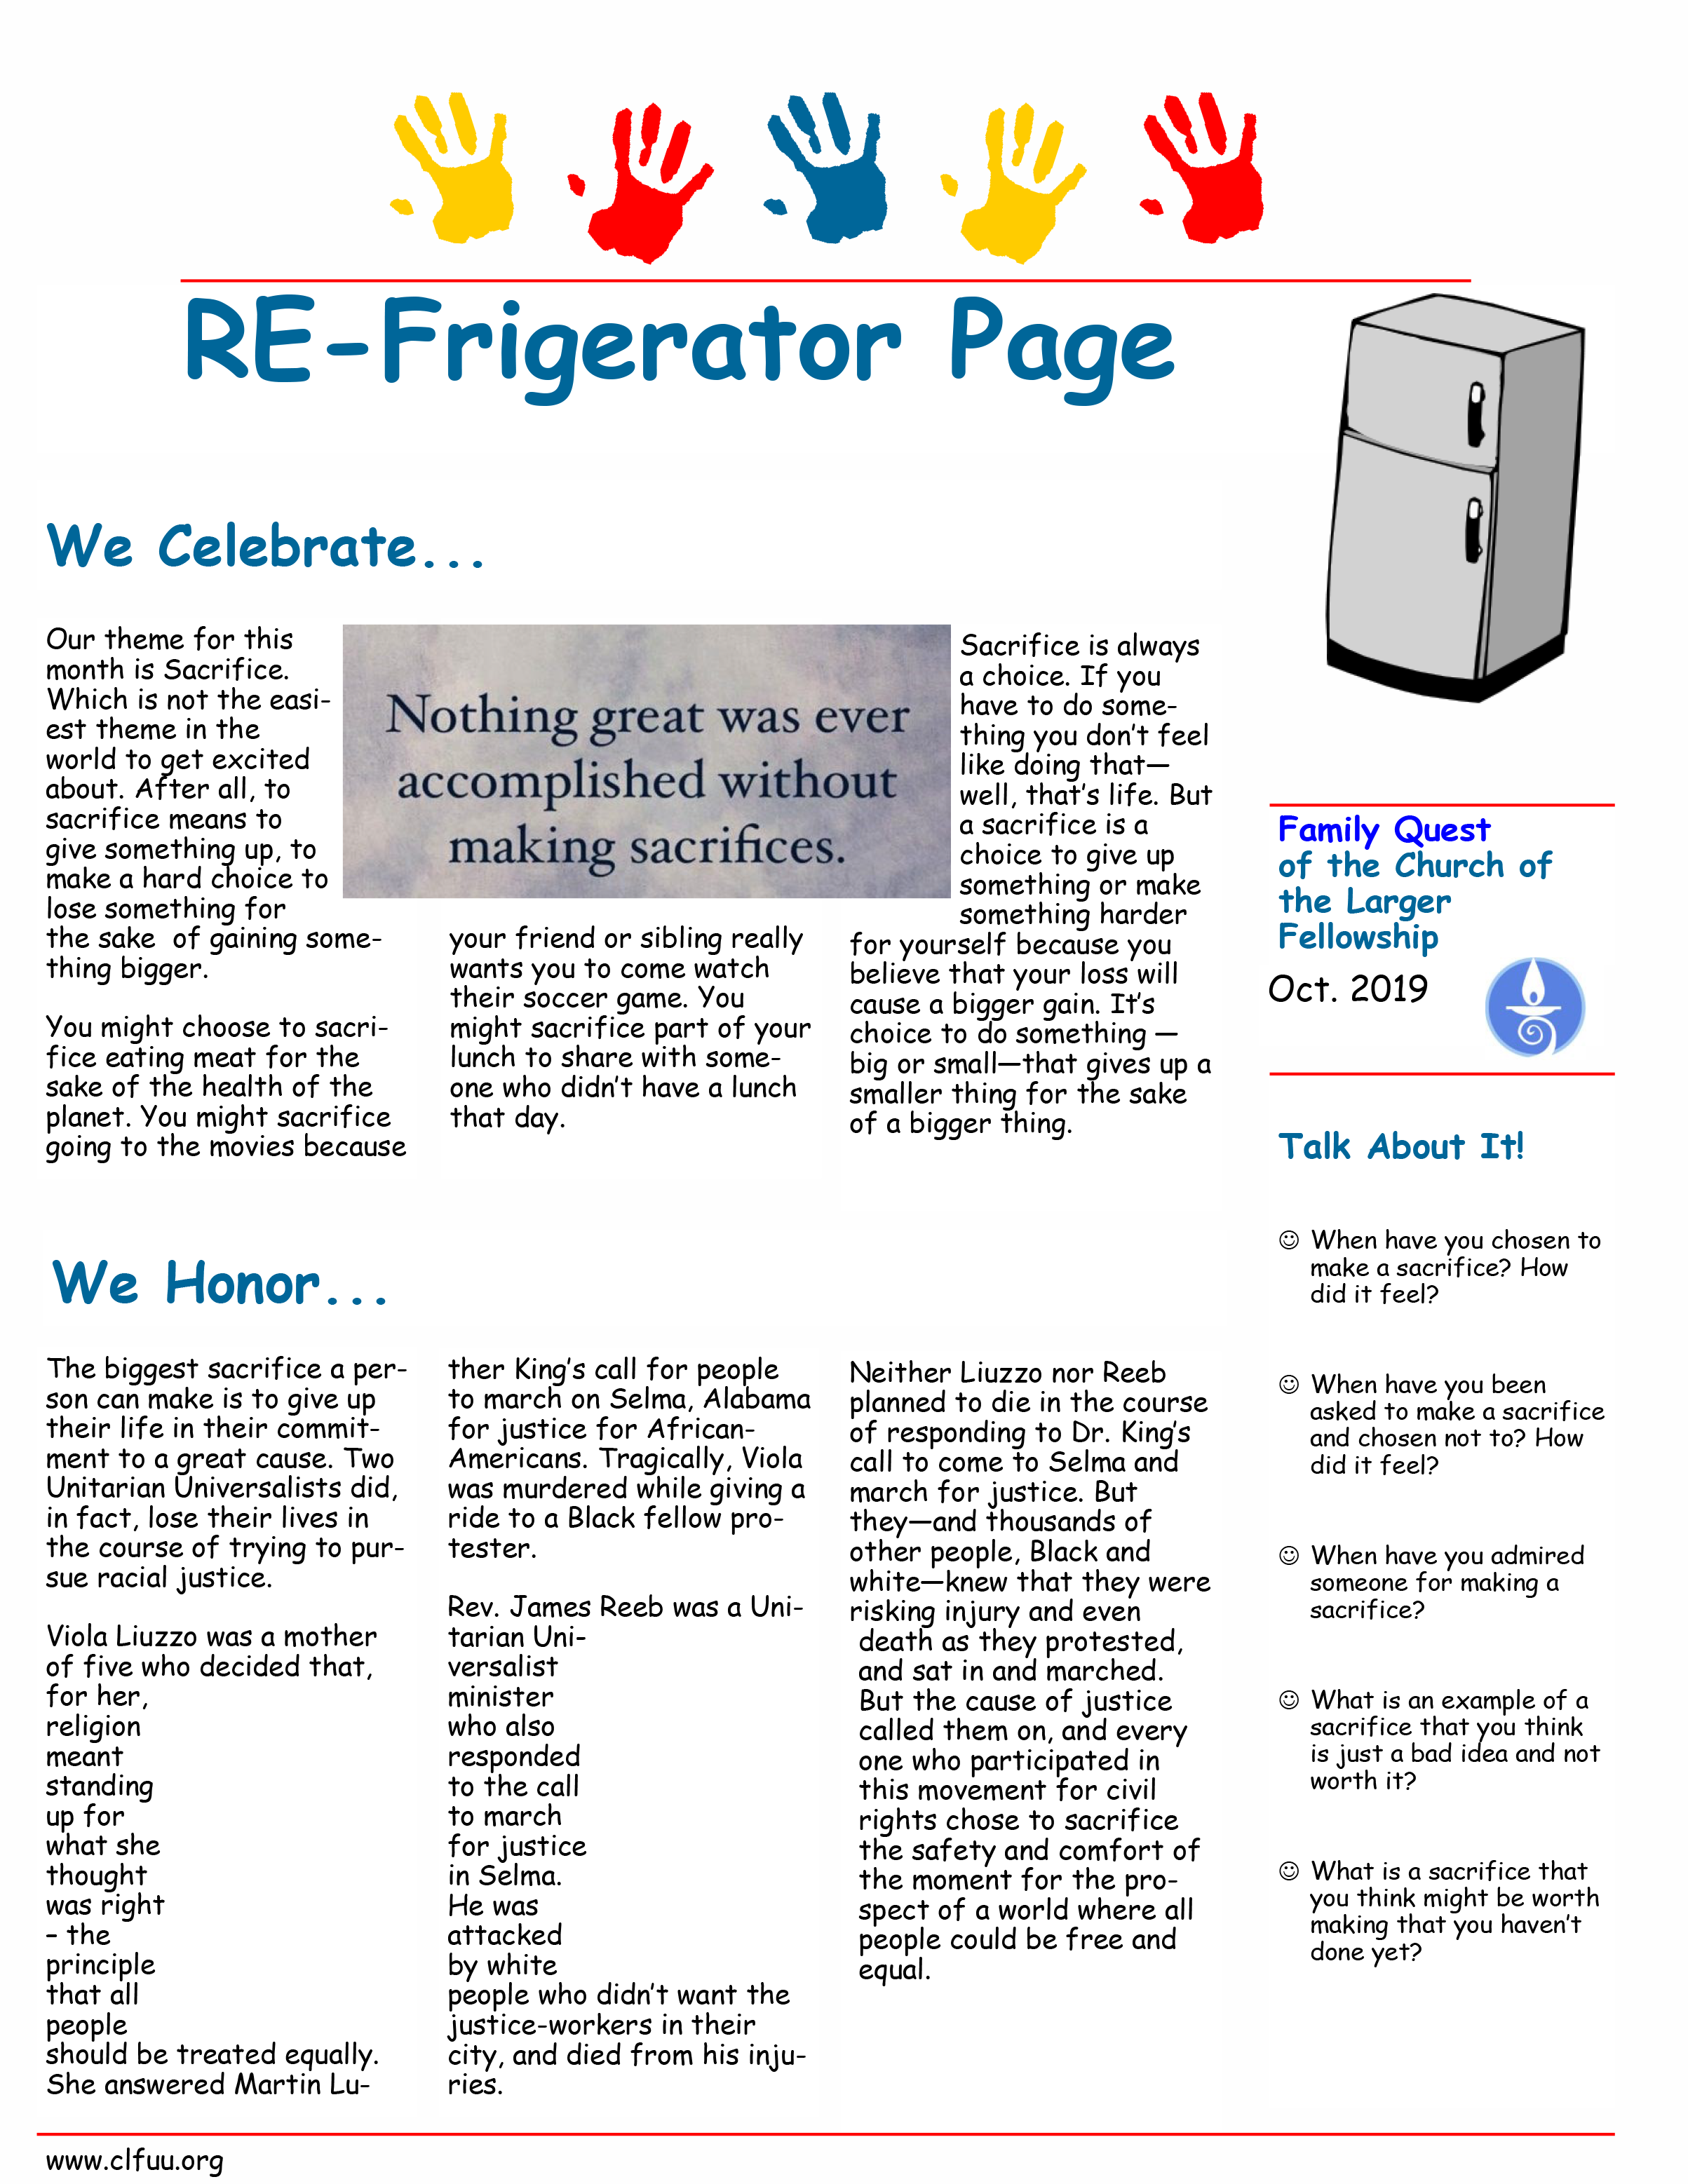 REfrigerator_Page_10-19-1.png